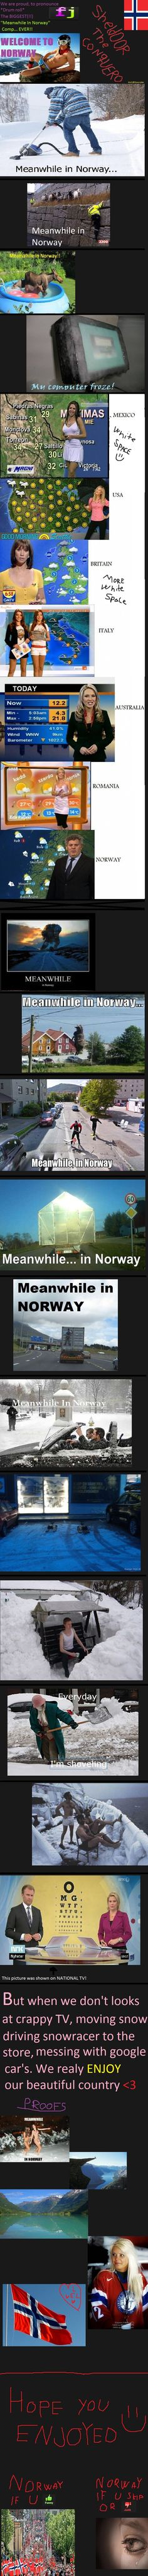 ''Meanwhile in Norway'' comp